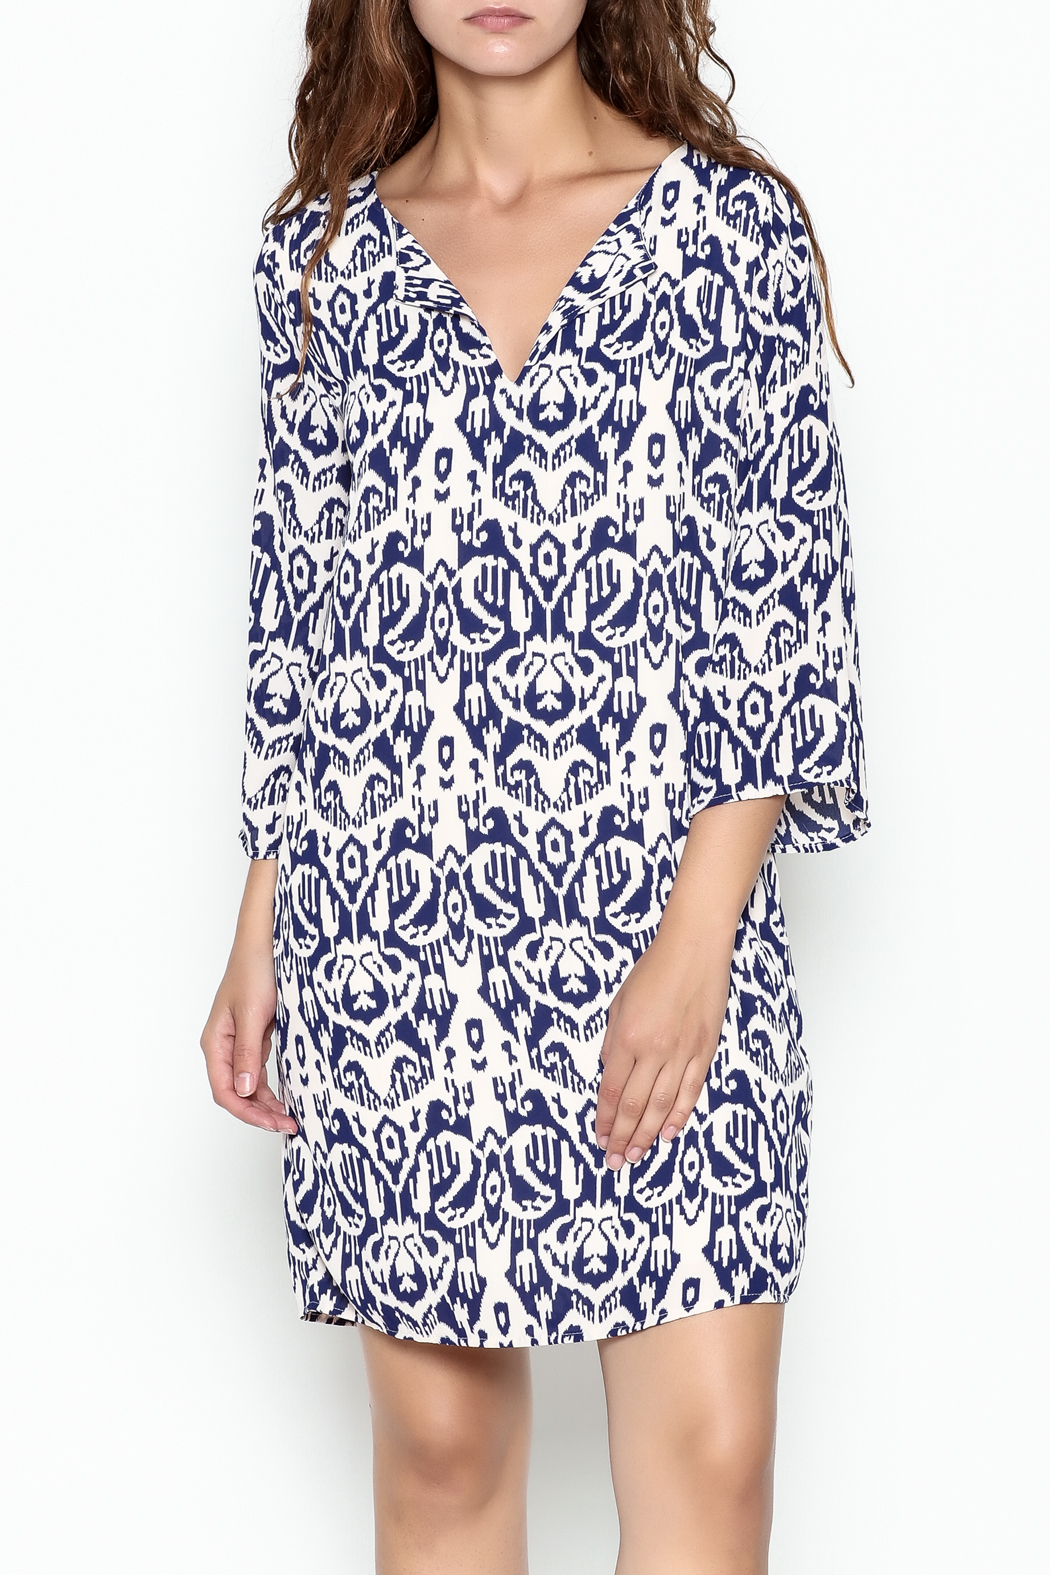 Peach Love California Ikat Blue Dress - Front Cropped Image